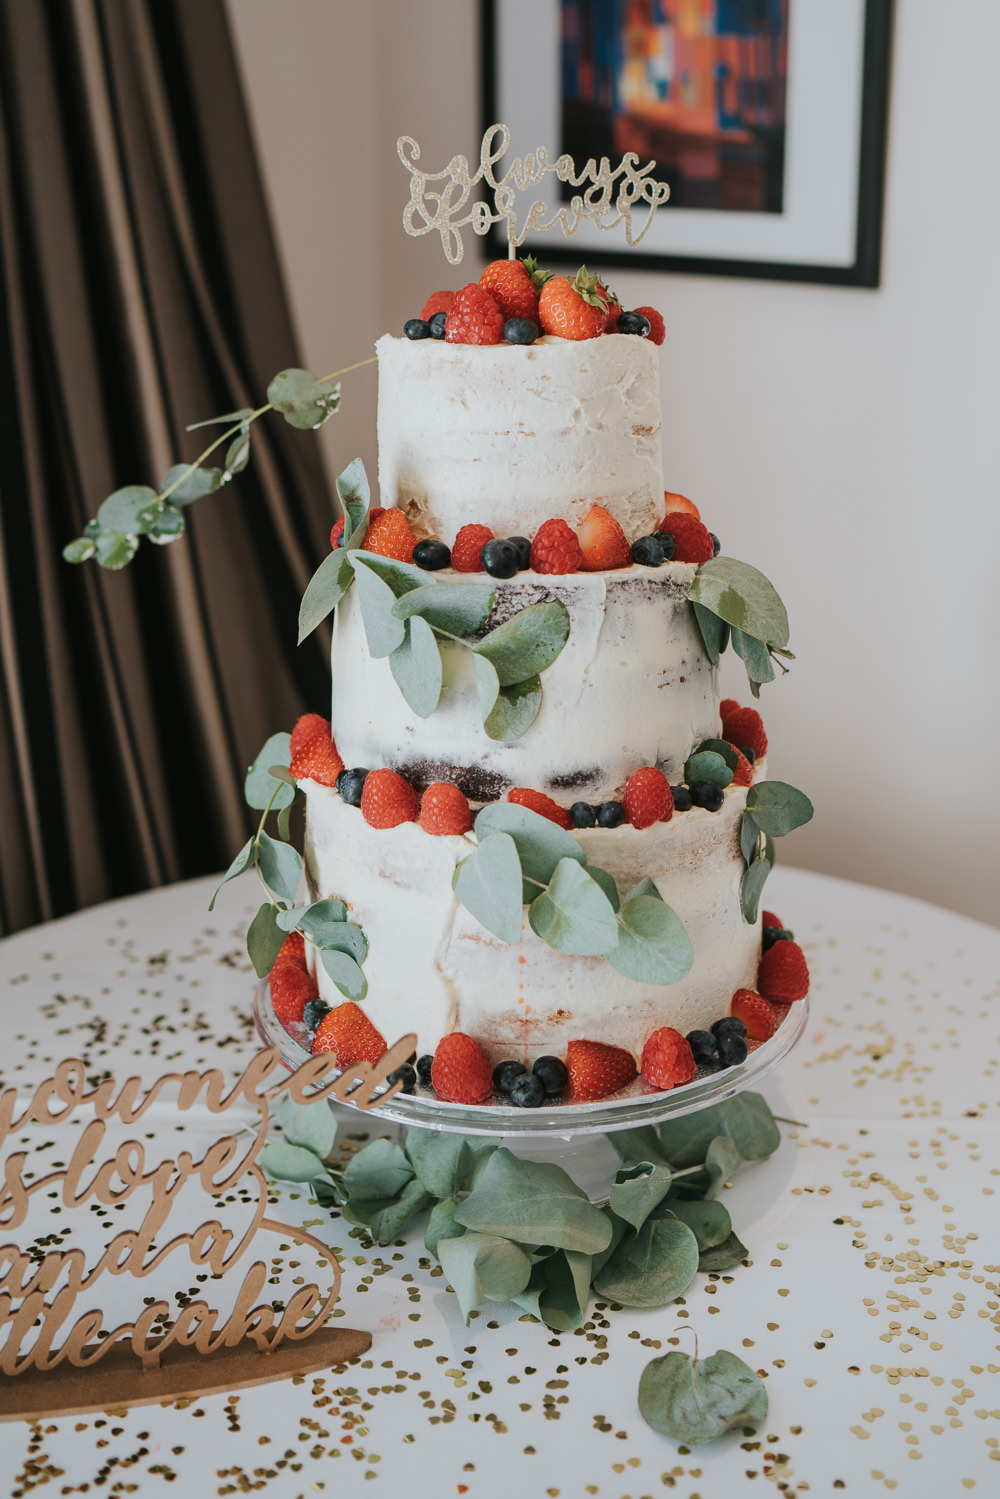 Intimate Outdoor Natural Relaxed Laid Back Summer Drinks Reception Semi Naked Cake Fruit Eucalyptus | Prested Hall Wedding Grace Elizabeth Photography